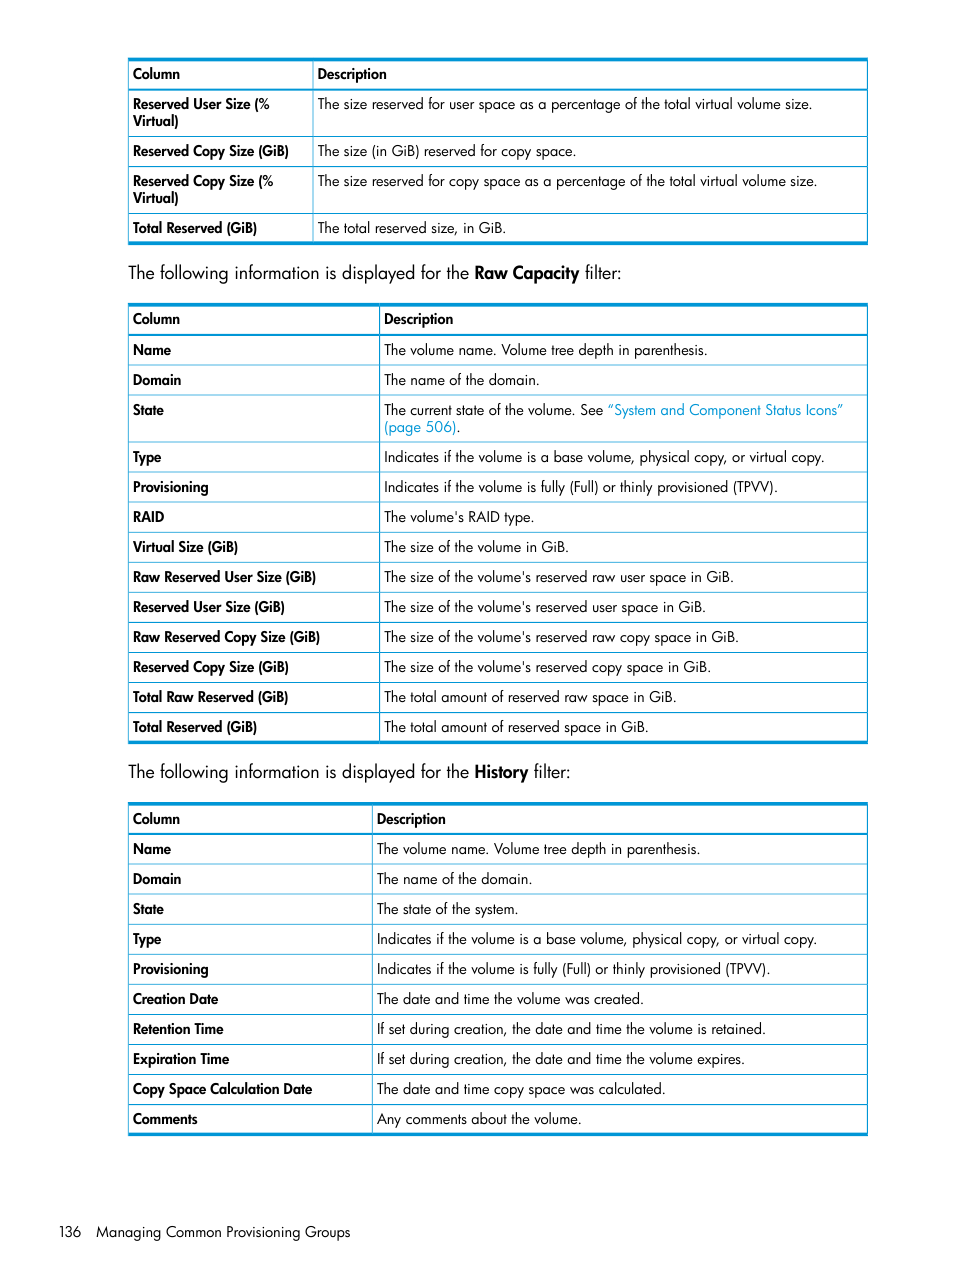 HP 3PAR Operating System Software User Manual | Page 136 / 524